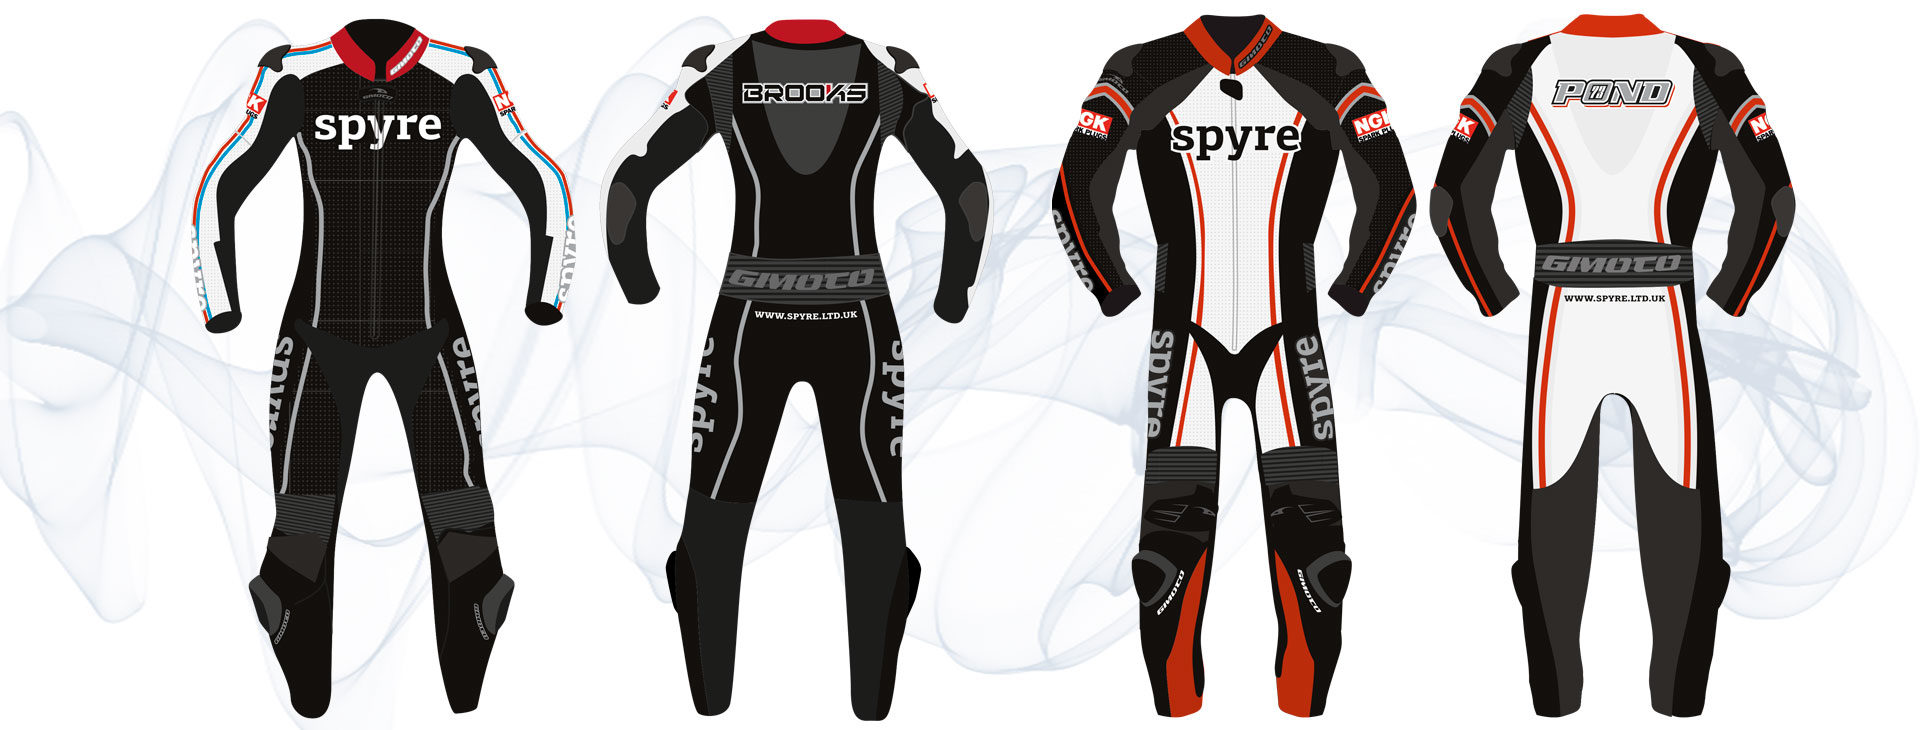 Bespoke motorcycle race leathers design